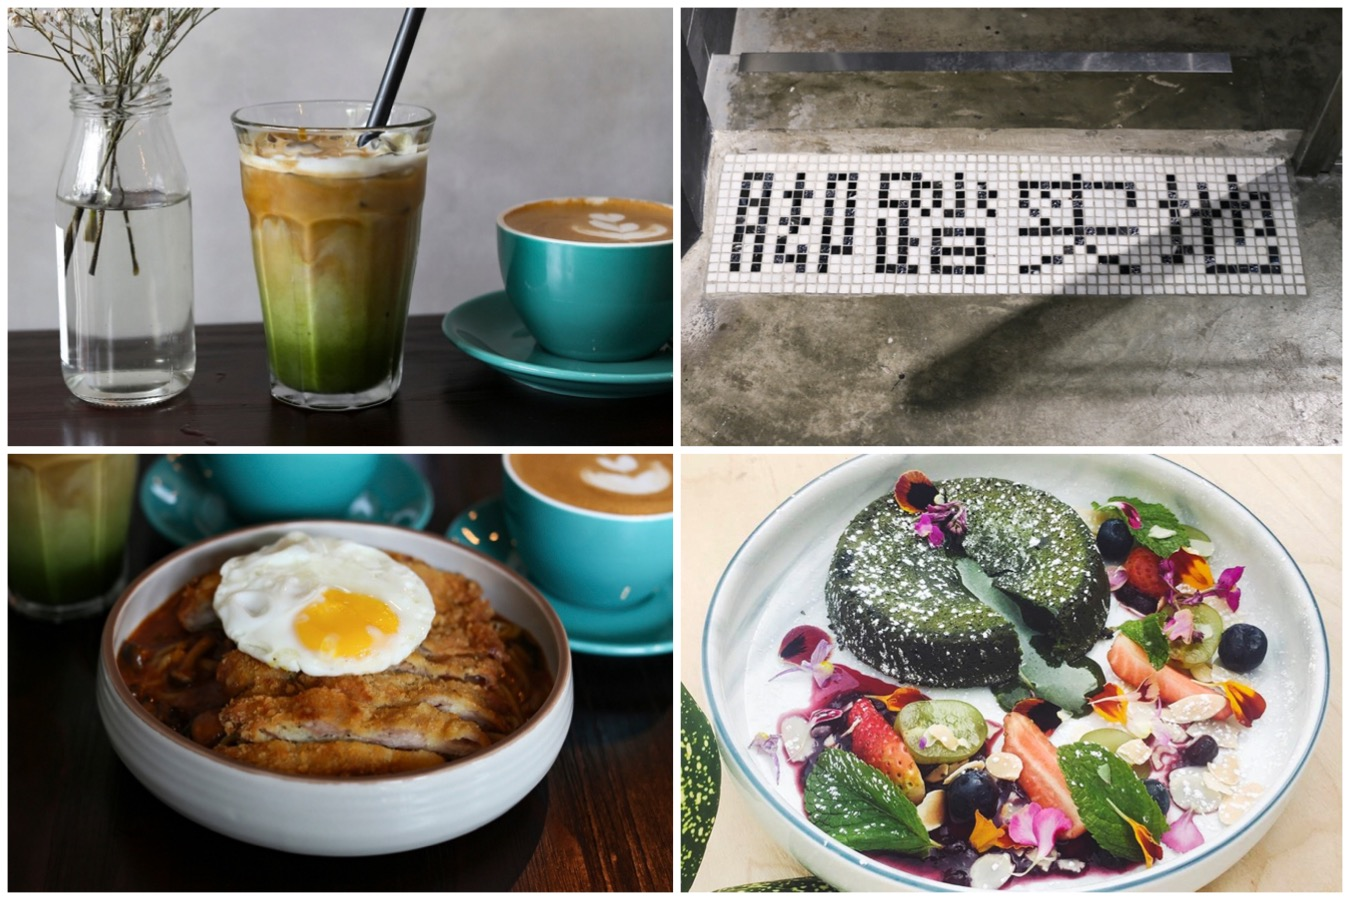 Thus Coffee - Humble Cafe With Hearty Brunch Of Chicken Stew And Jjolmyeon, At Upper Thomson